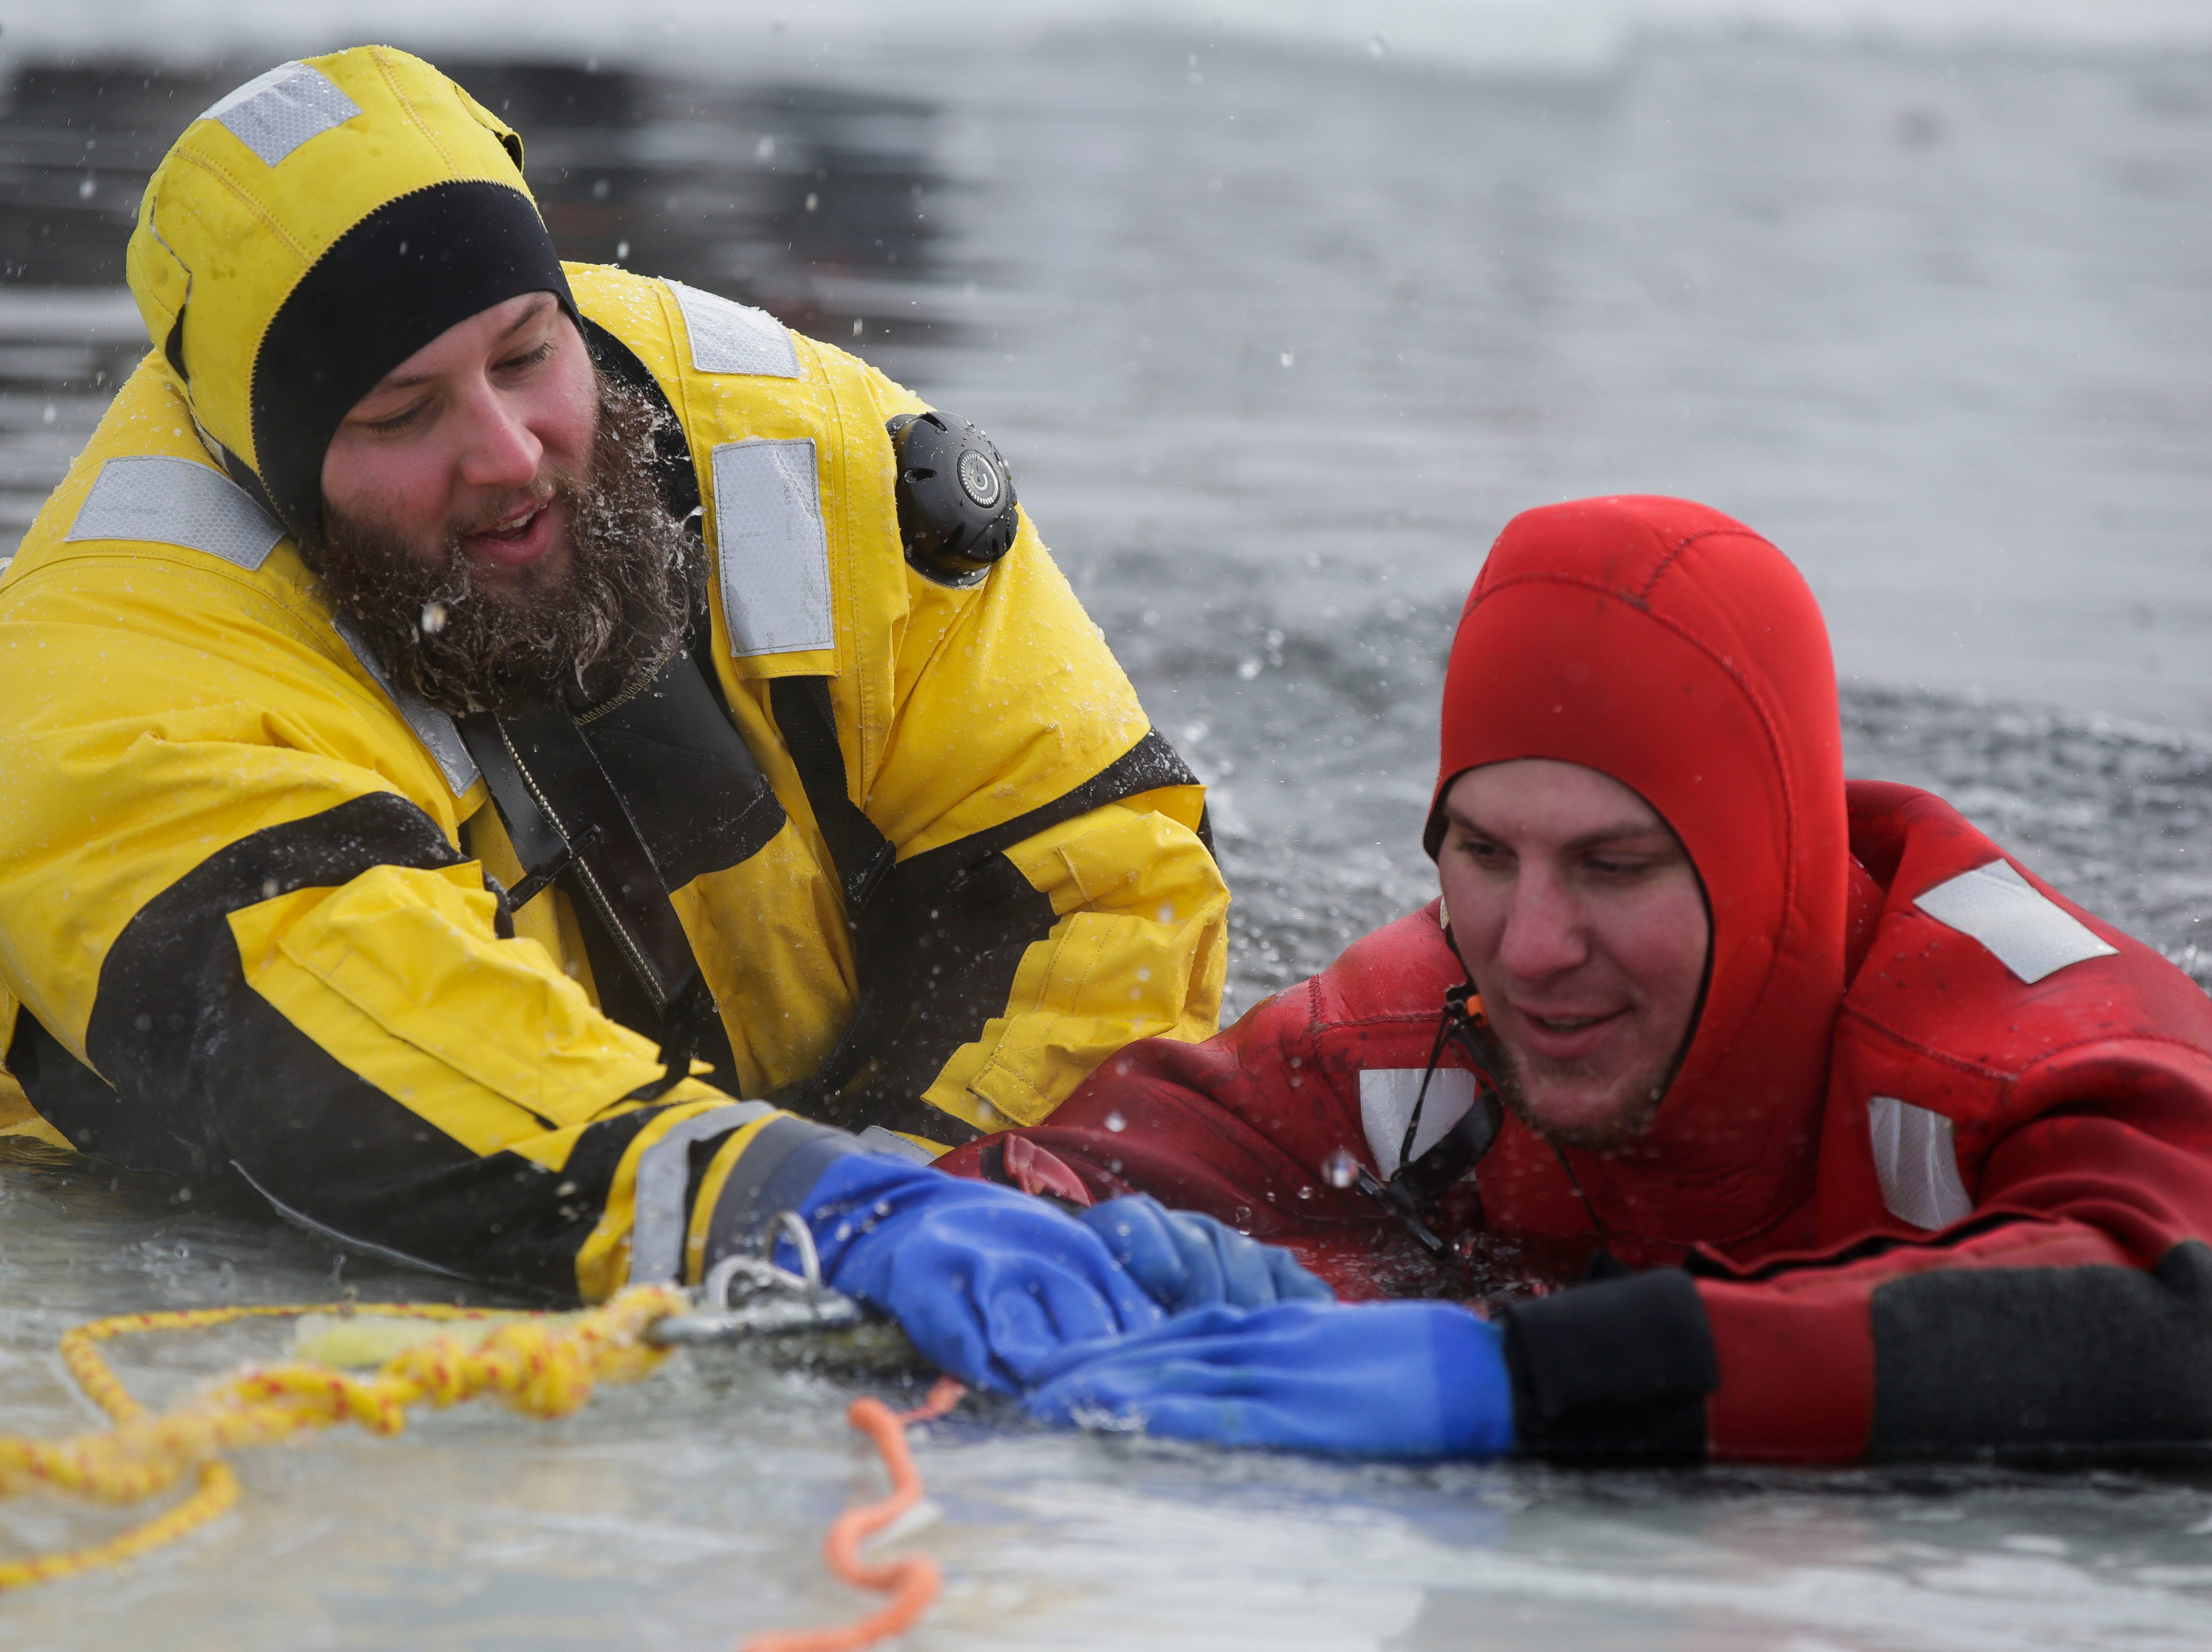 Firefighters from various departments participate in an ice rescue training session on Saturday, January 26, 2019, outside Pittsville, Wis. The Pittsville Fire Department provides the training annually for other departments across the state to help ensure as many departments as possible have trained personnel.  Tork Mason/USA TODAY NETWORK-Wisconsin